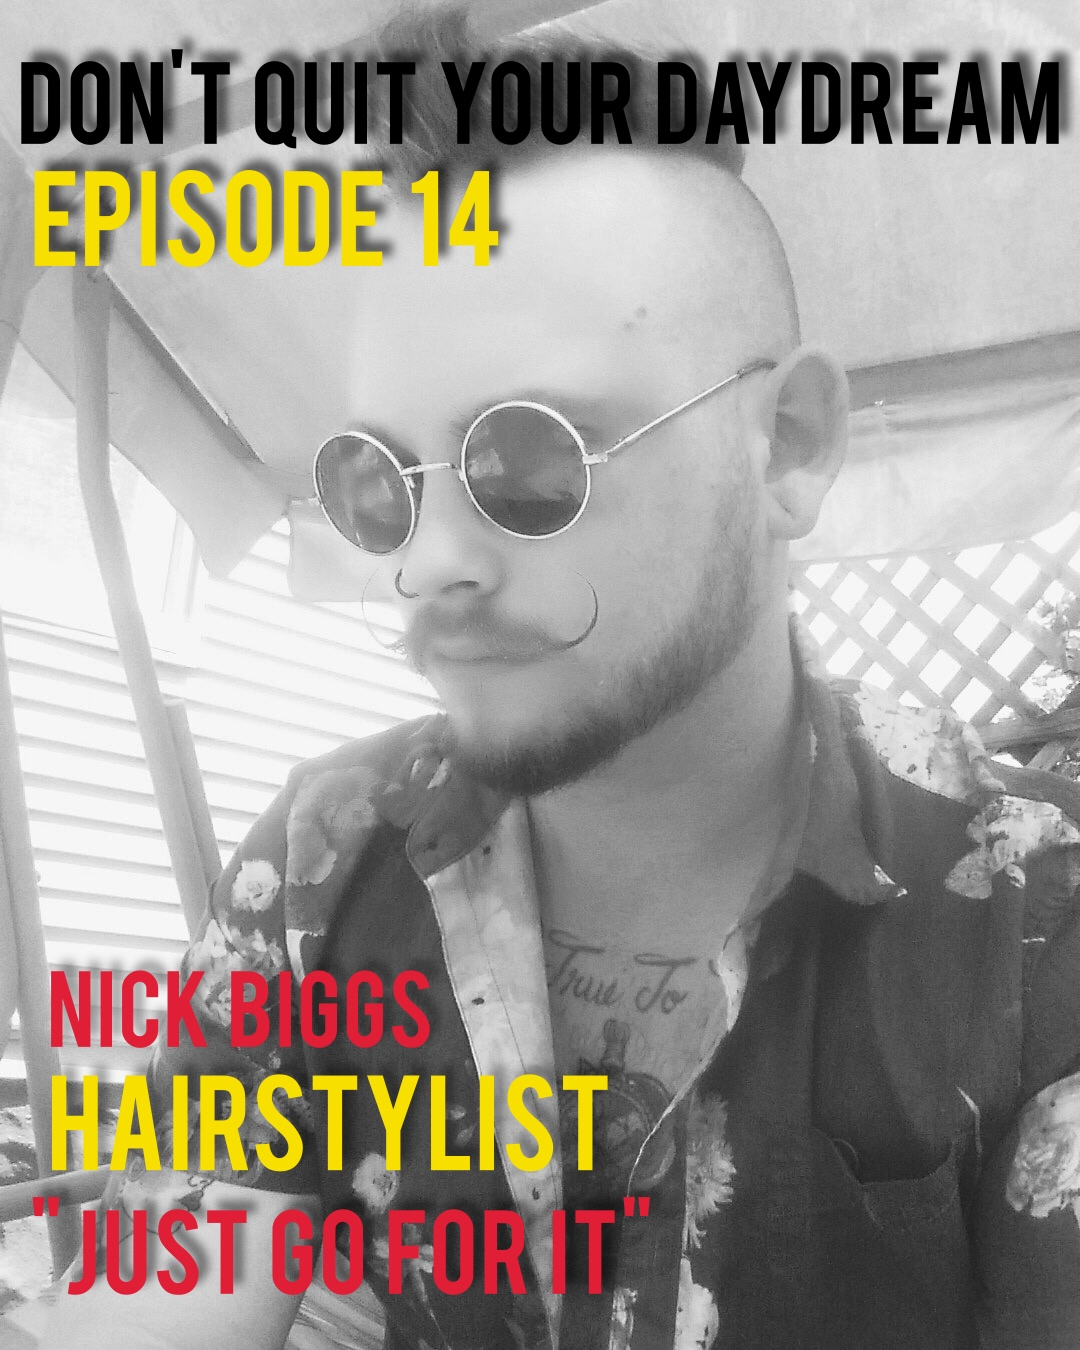 In Episode 14 of Don't Quit Your Daydream we sit down with forward thinking hairstylist, Nick Biggs. Nick discusses how learning to help others look good has changed his life as well as his overall outlook towards the town he lives in. We discuss keeping up with fashion trends, setting up photo shoots and of course drawing things on manikin heads. Take a peek at Nick's work and give him a shout if you are in the search for the perfect cut.  https://www.instagram.com/nickbiggs_art/